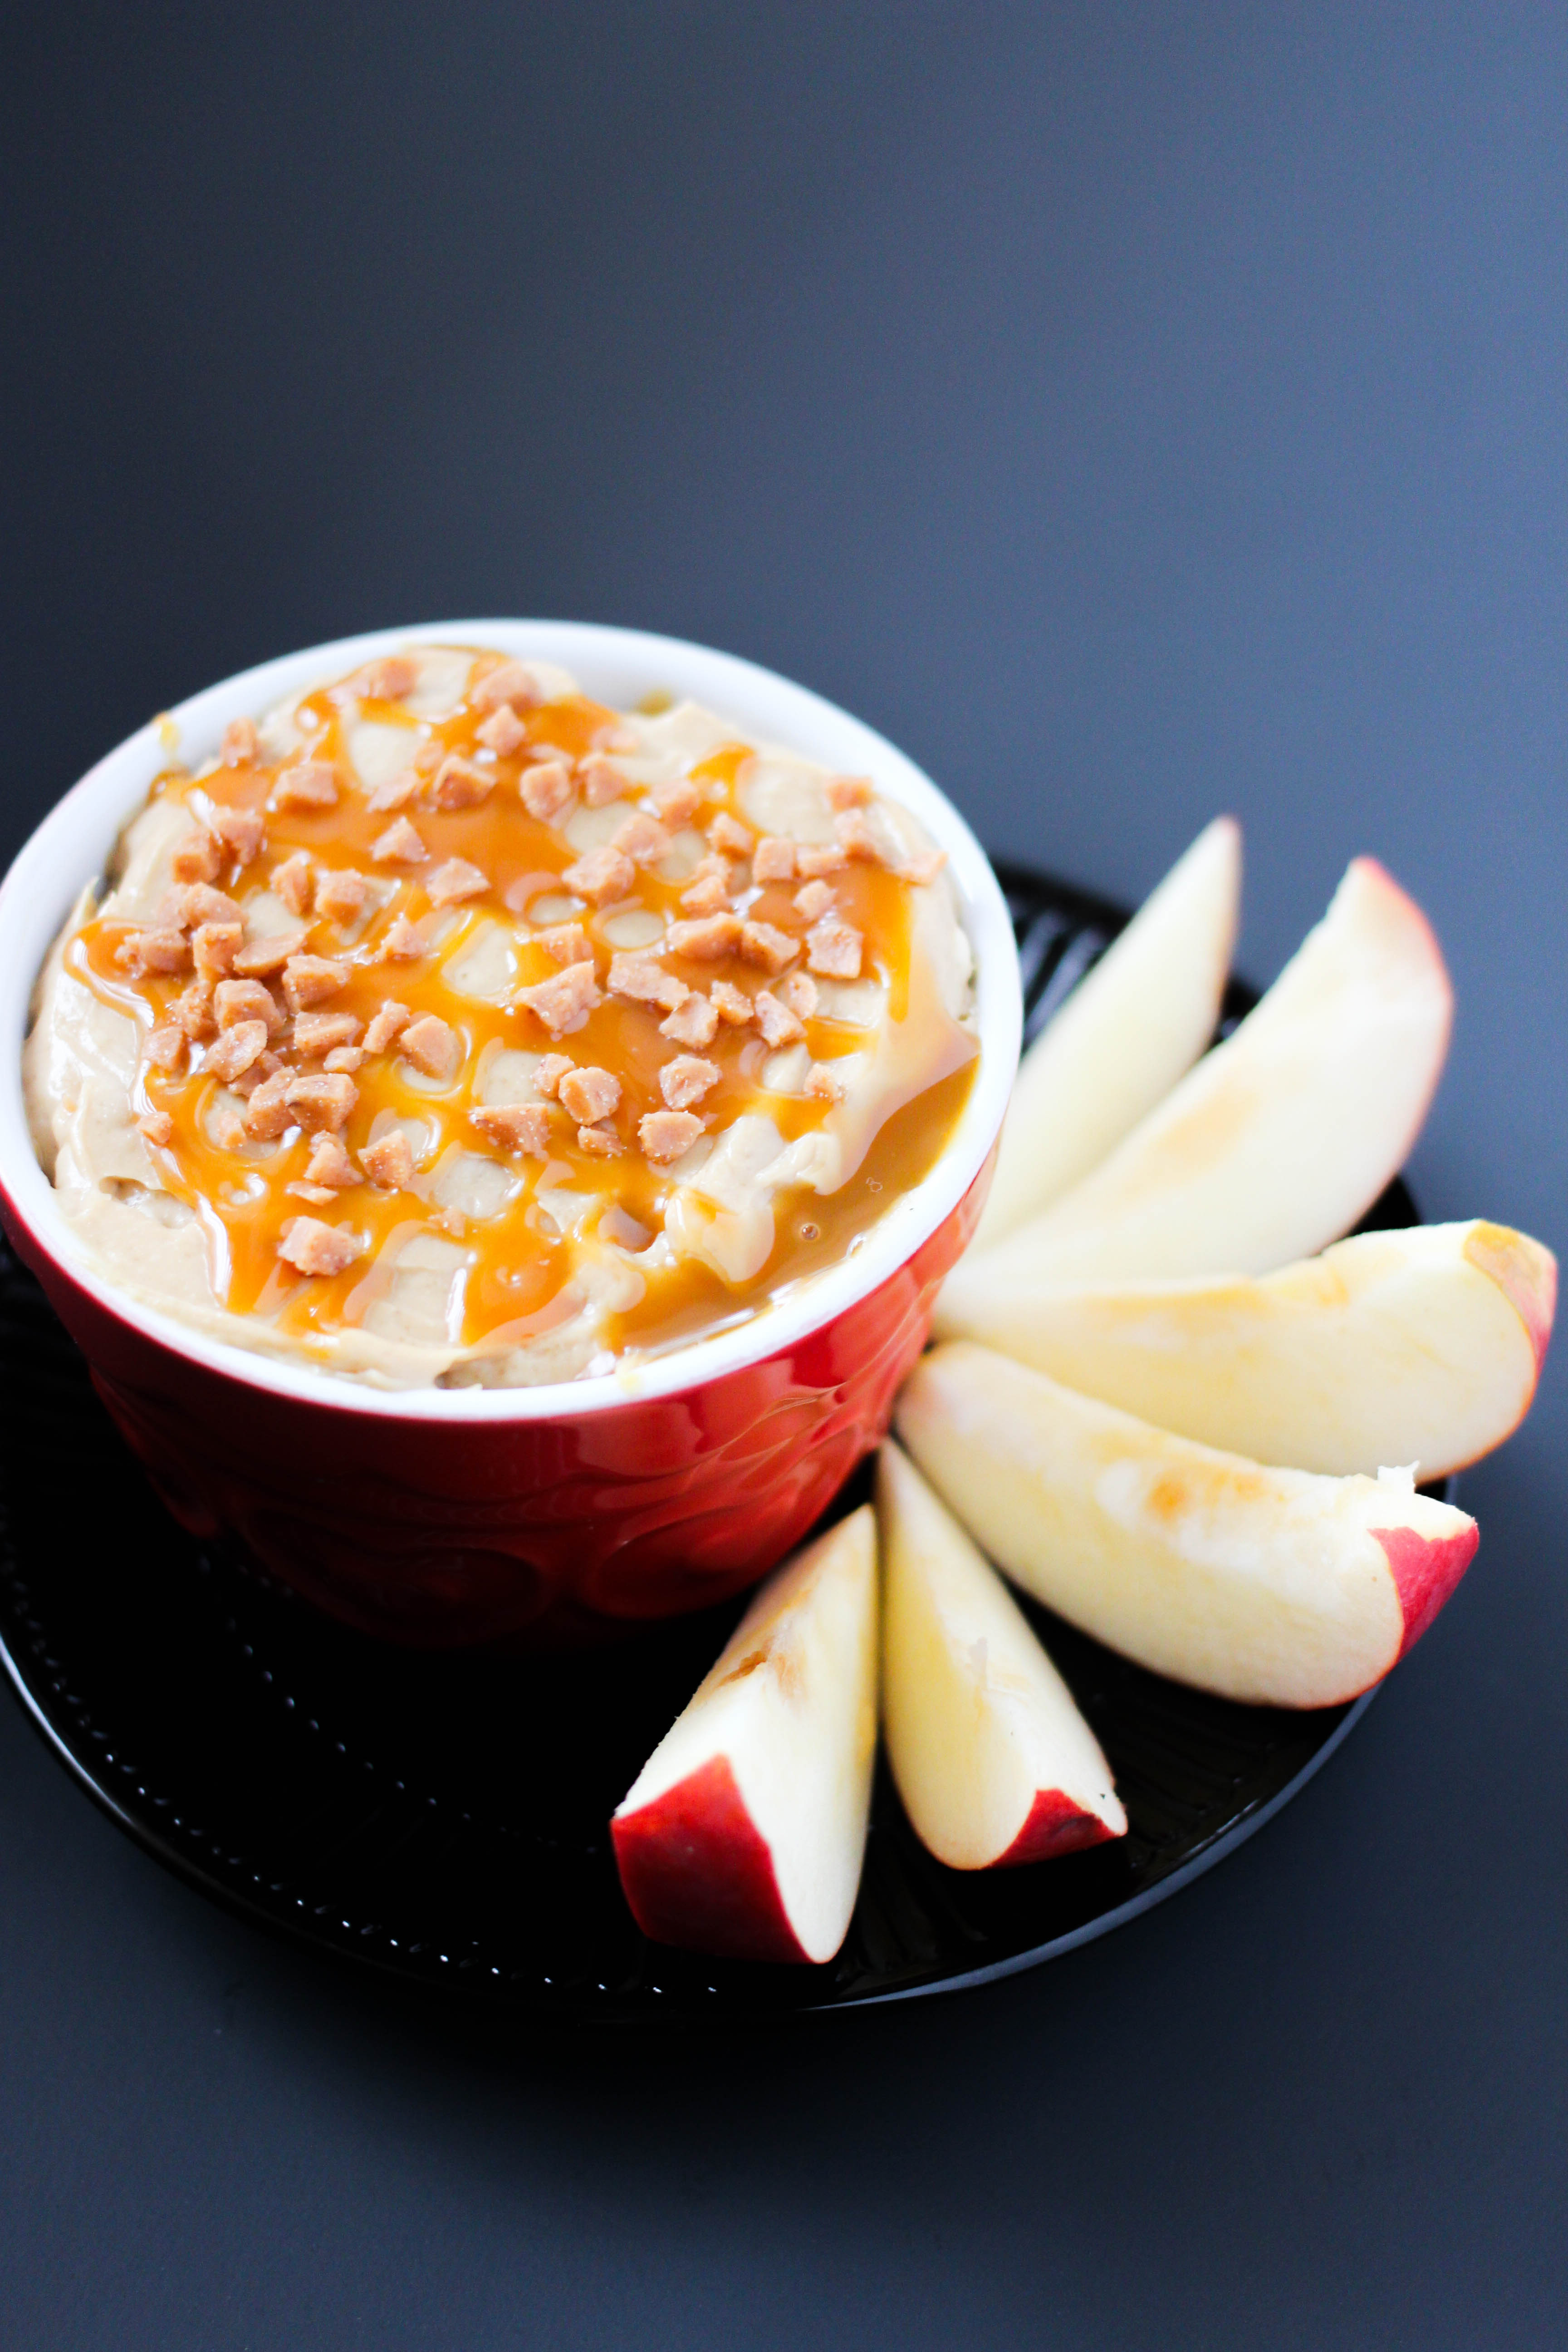 caramel apple dip on a black plate with apples